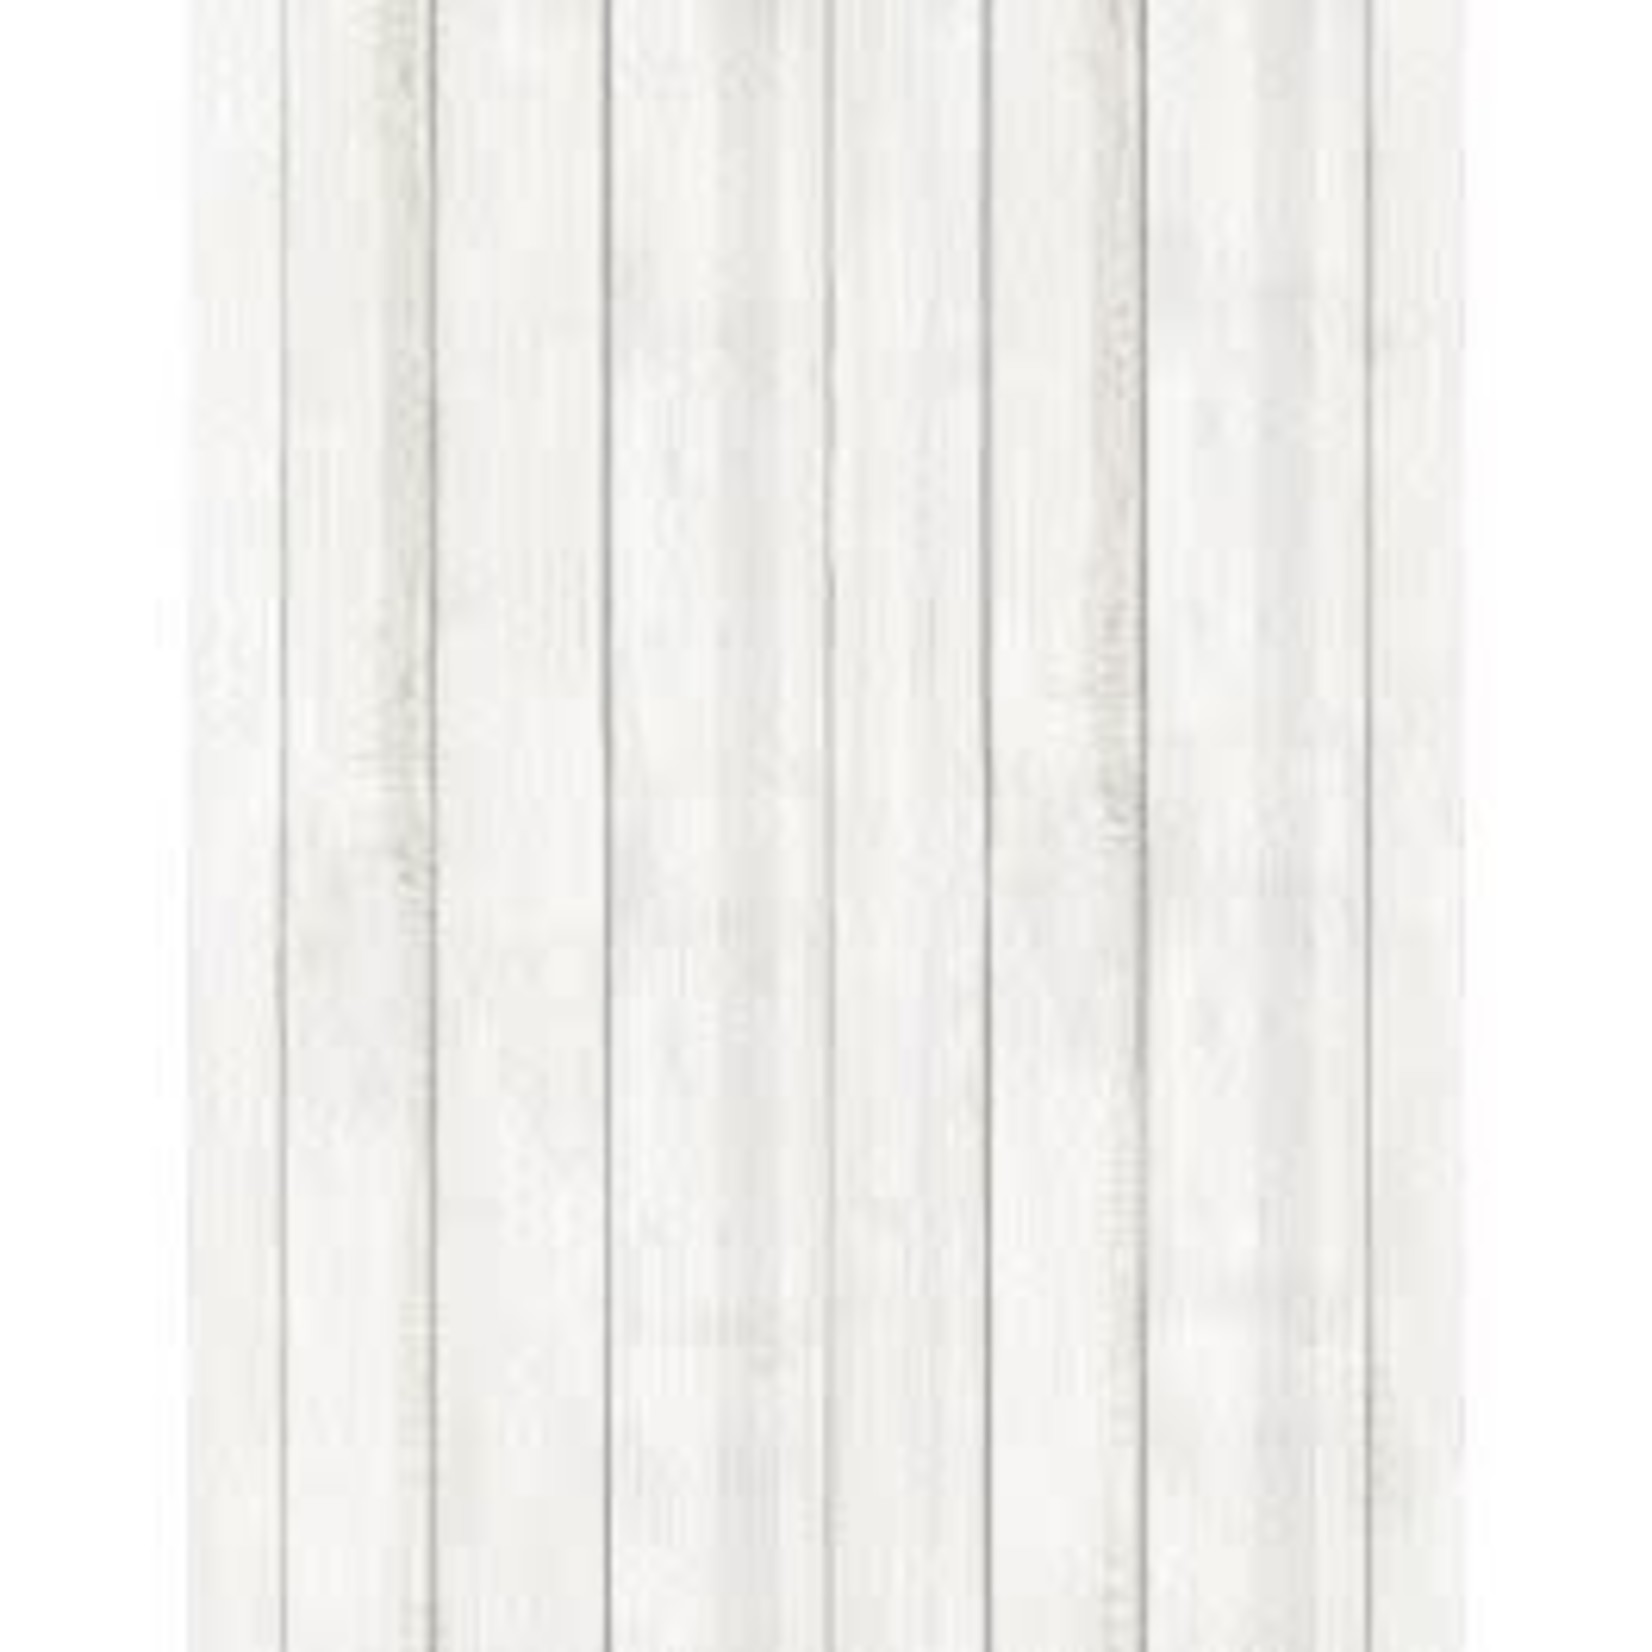 Wilmington Prints PER CM OR $21/M Anne Rowan Lake Life White and Grey Boards